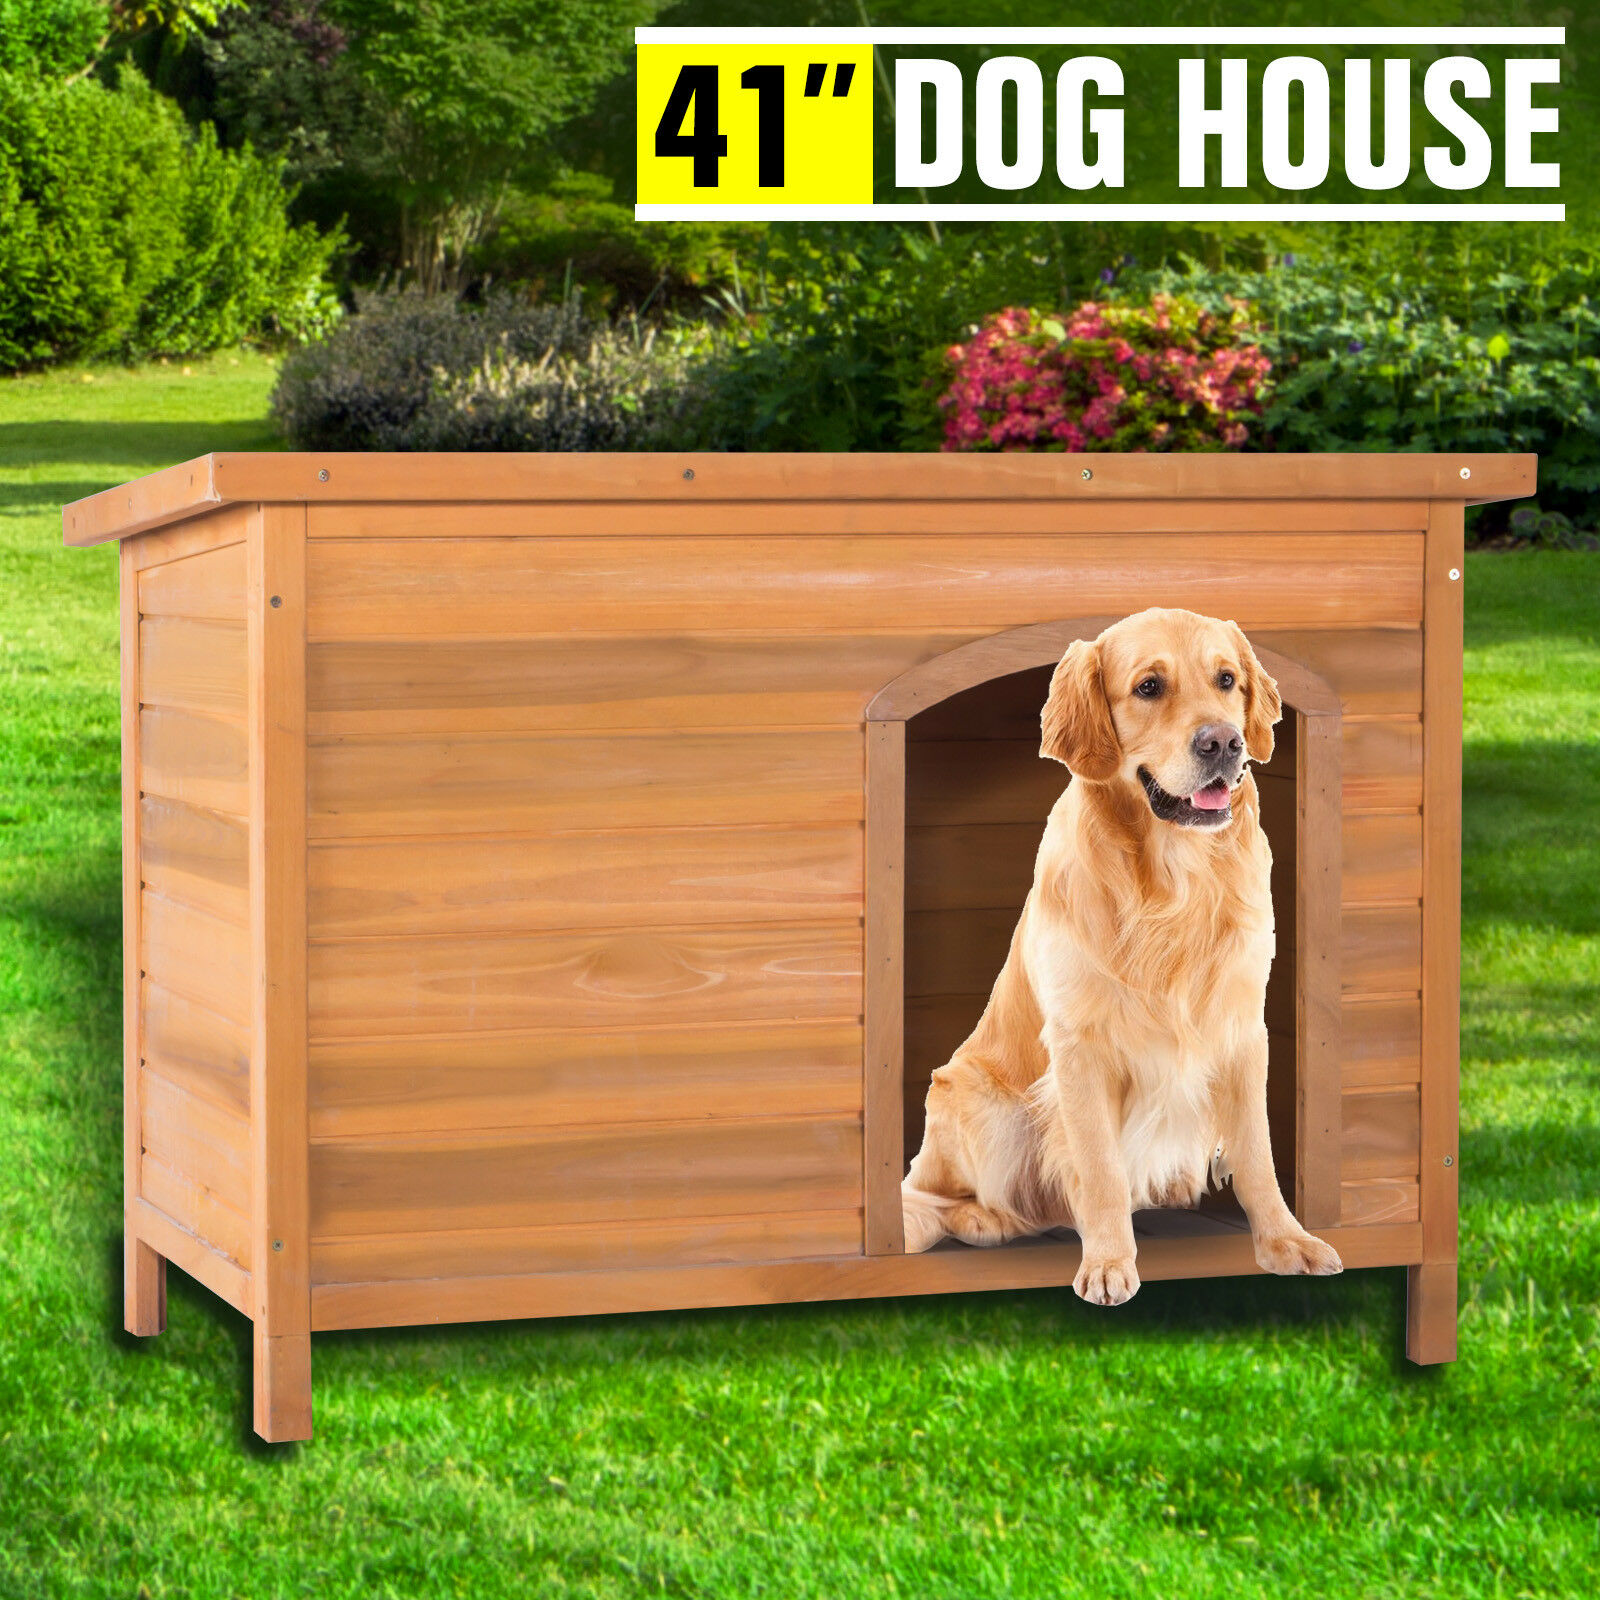 Large Wooden Dog House Kennel Pet Shelter Weather Resistant Home Outdoor Ground